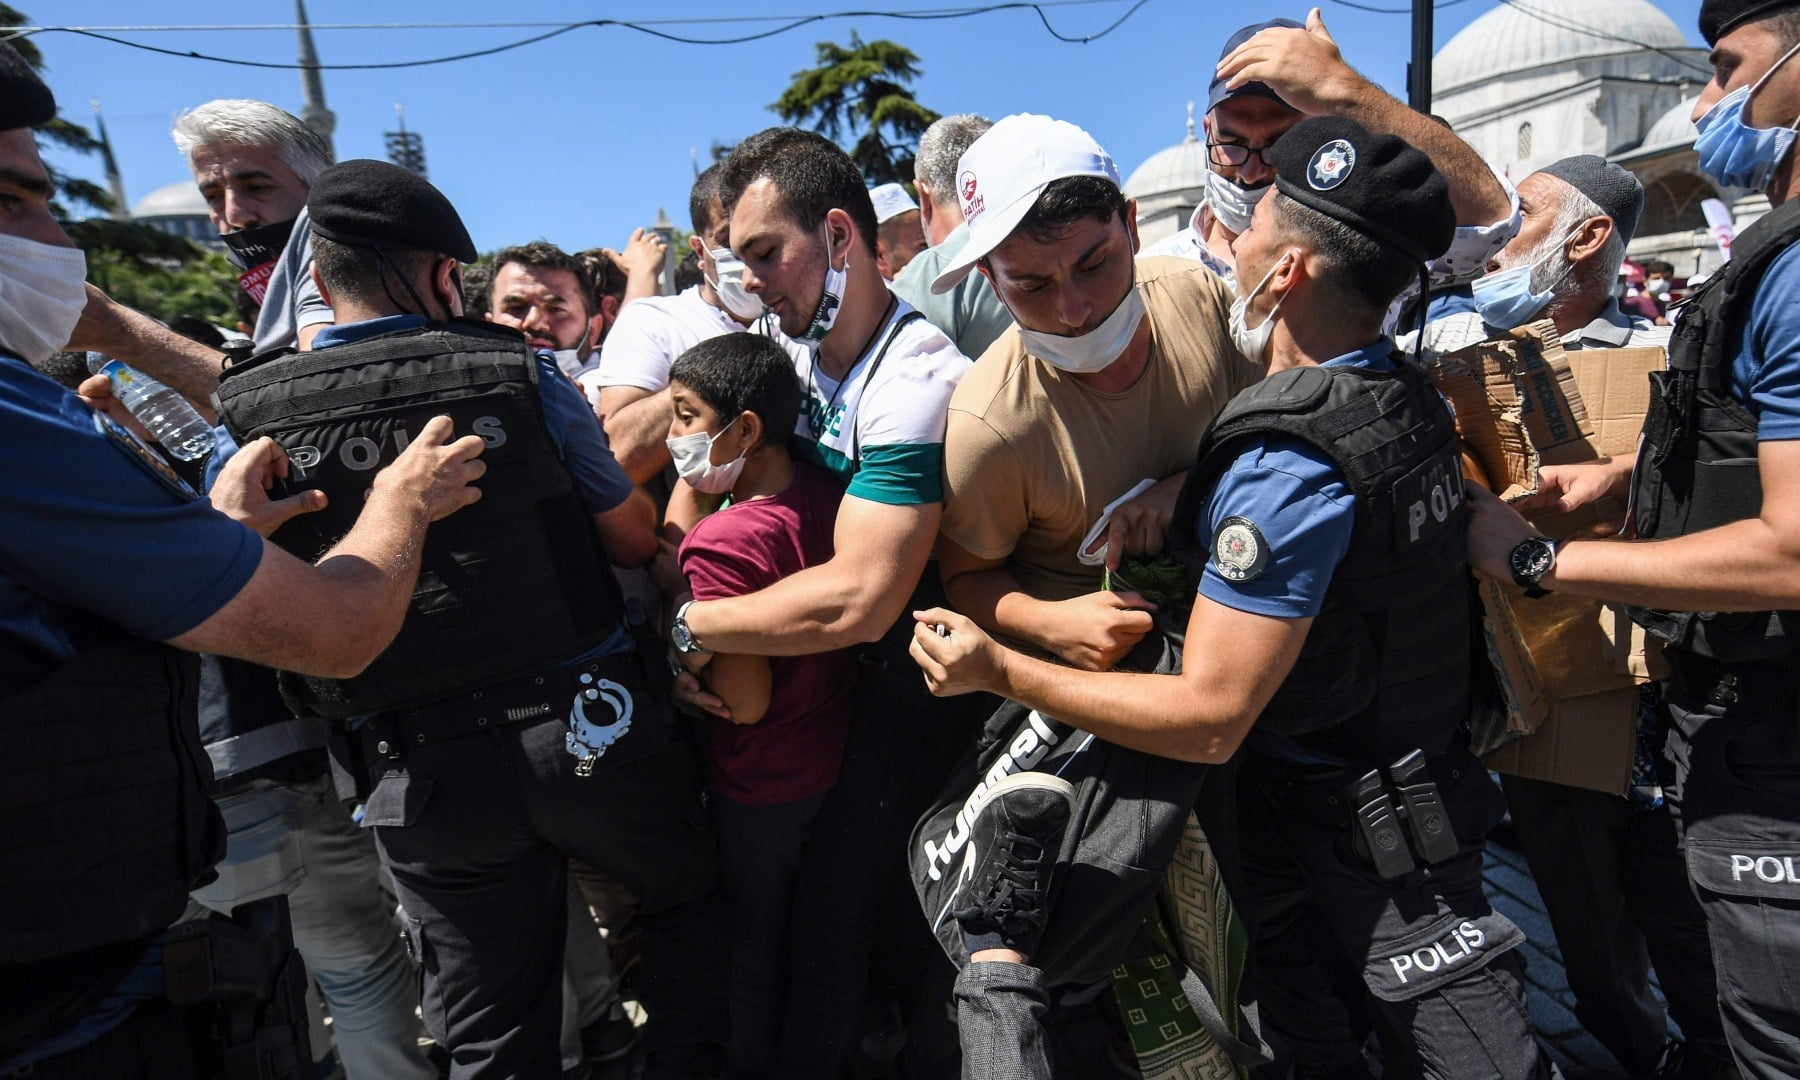 Turkish police scuffle with a small group of faithful trying to enter the overcrowded plaza of the historic Sultanahmet district of Istanbul on Friday as thousands of people gather outside Hagia Sophia to perform the Friday prayer. — AFP